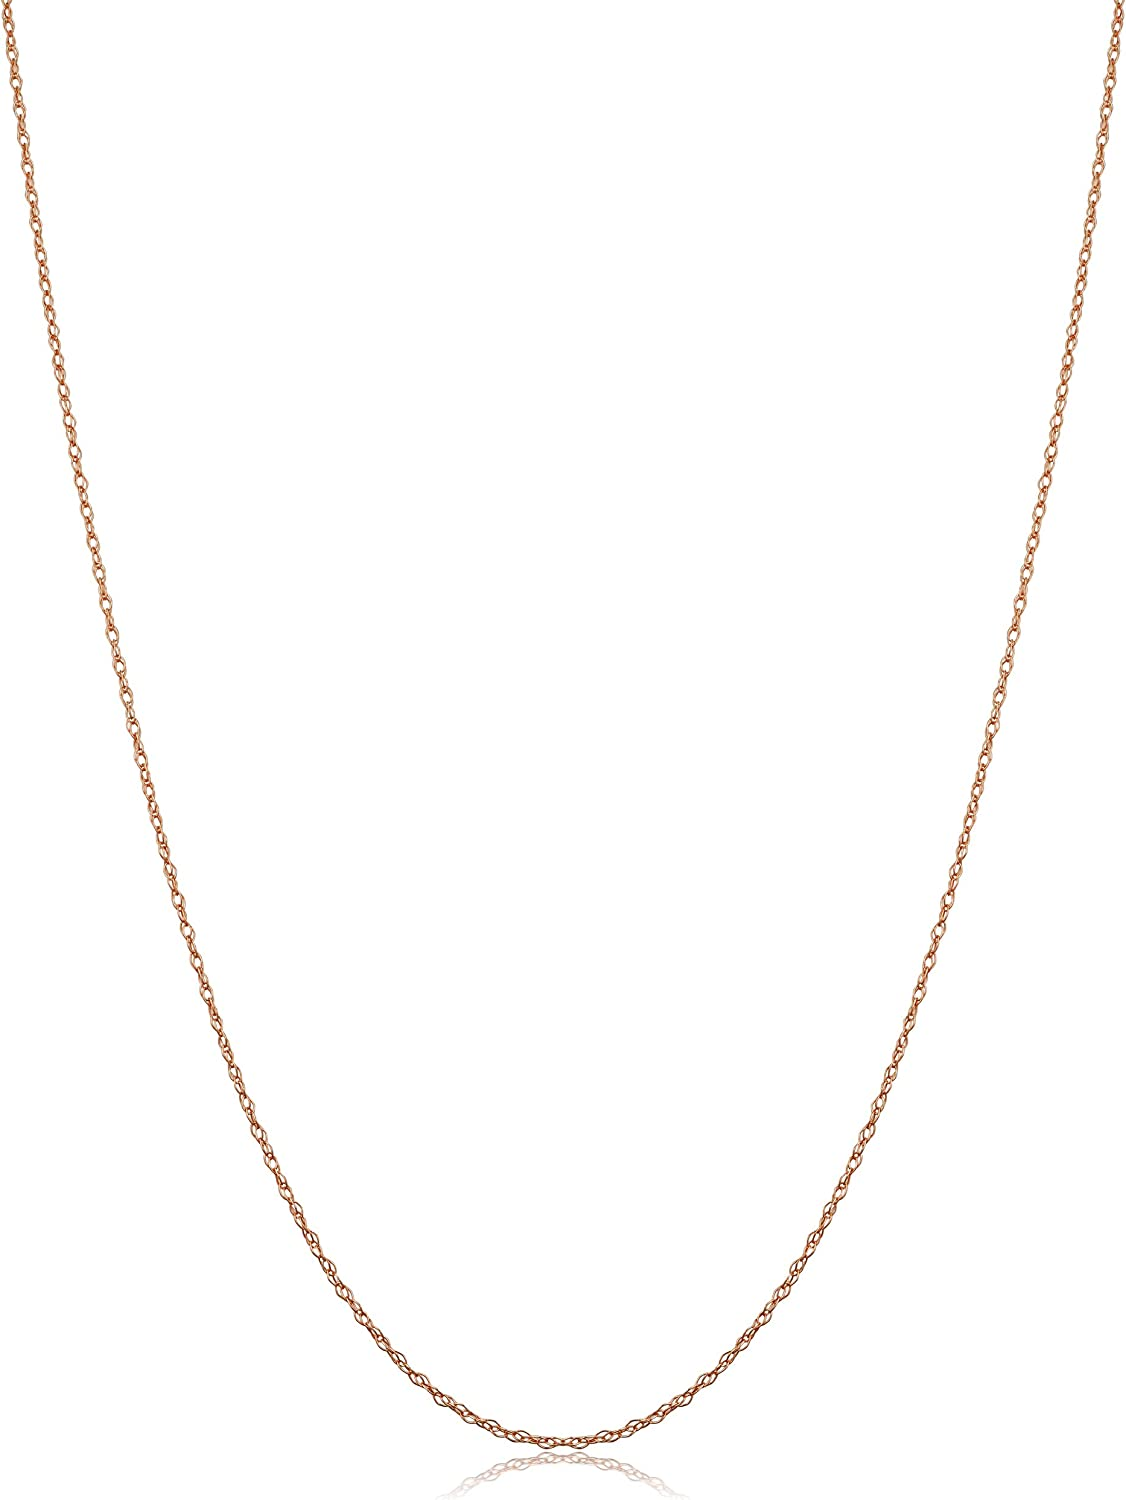 Kooljewelry Solid 10k Rose Gold 0.7 mm Dainty Rope Chain Necklace